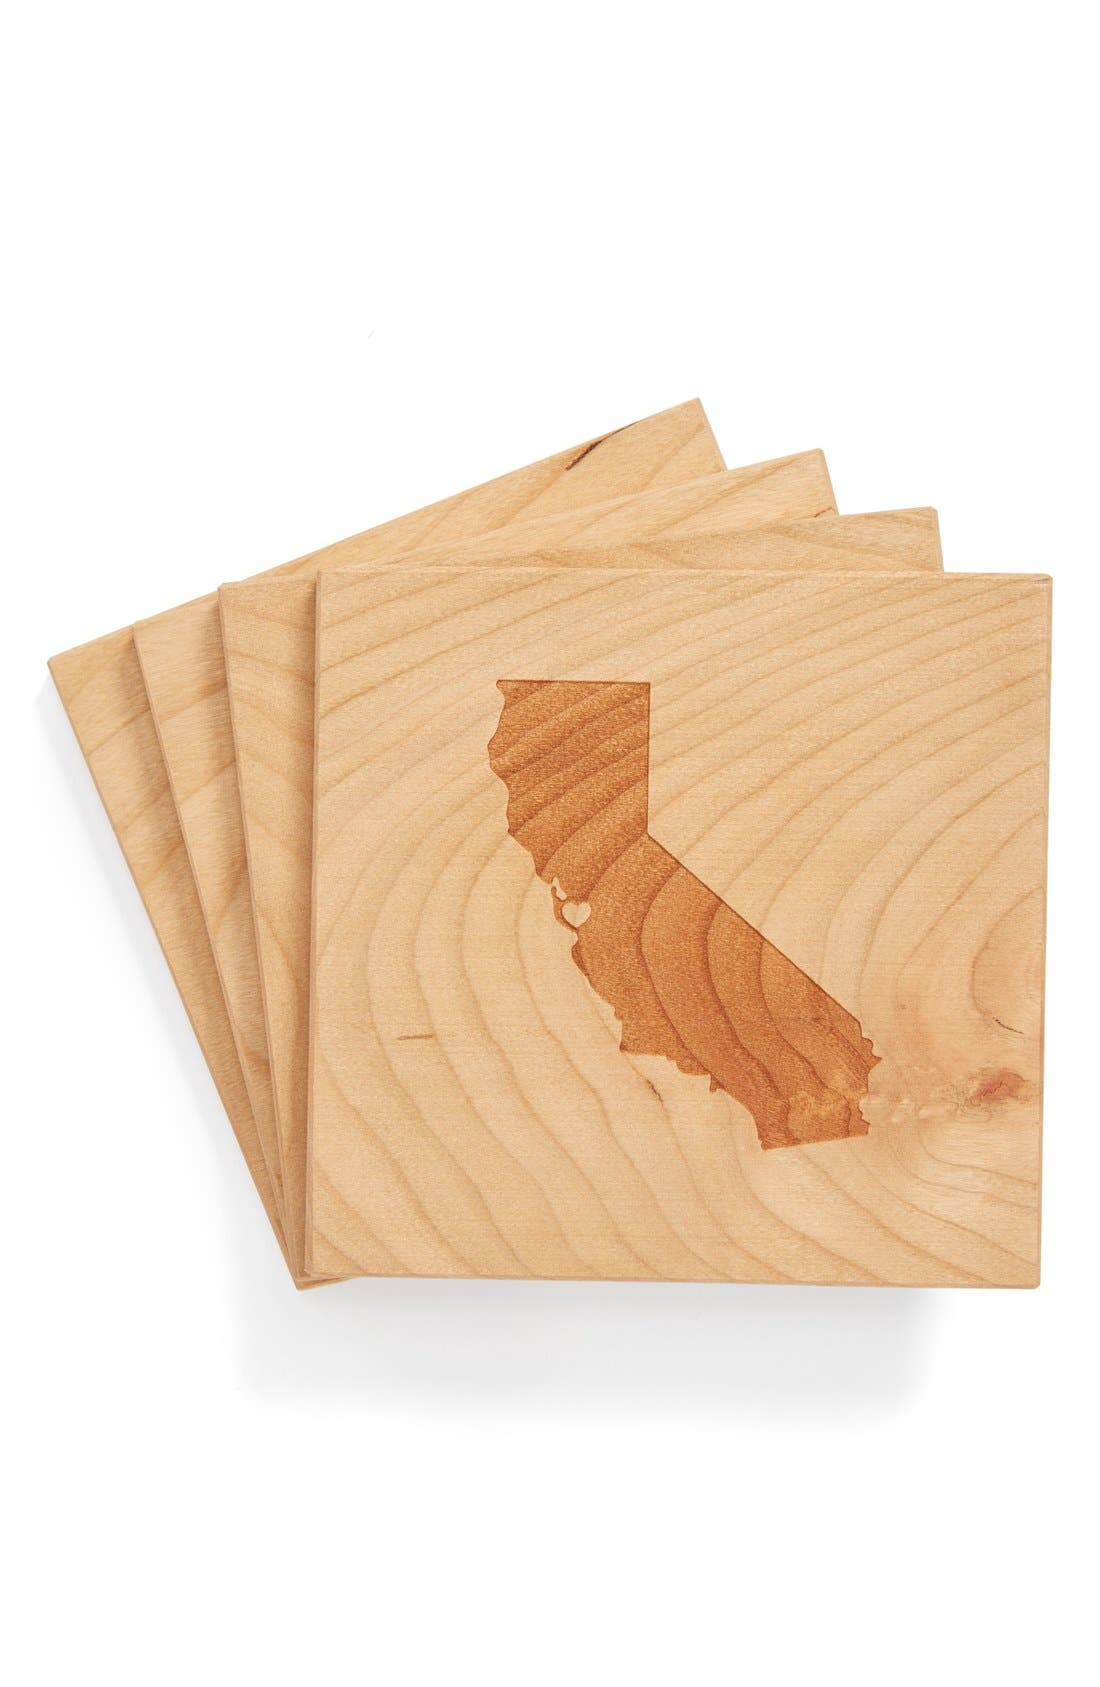 'State Silhouette' Coasters,                             Main thumbnail 32, color,